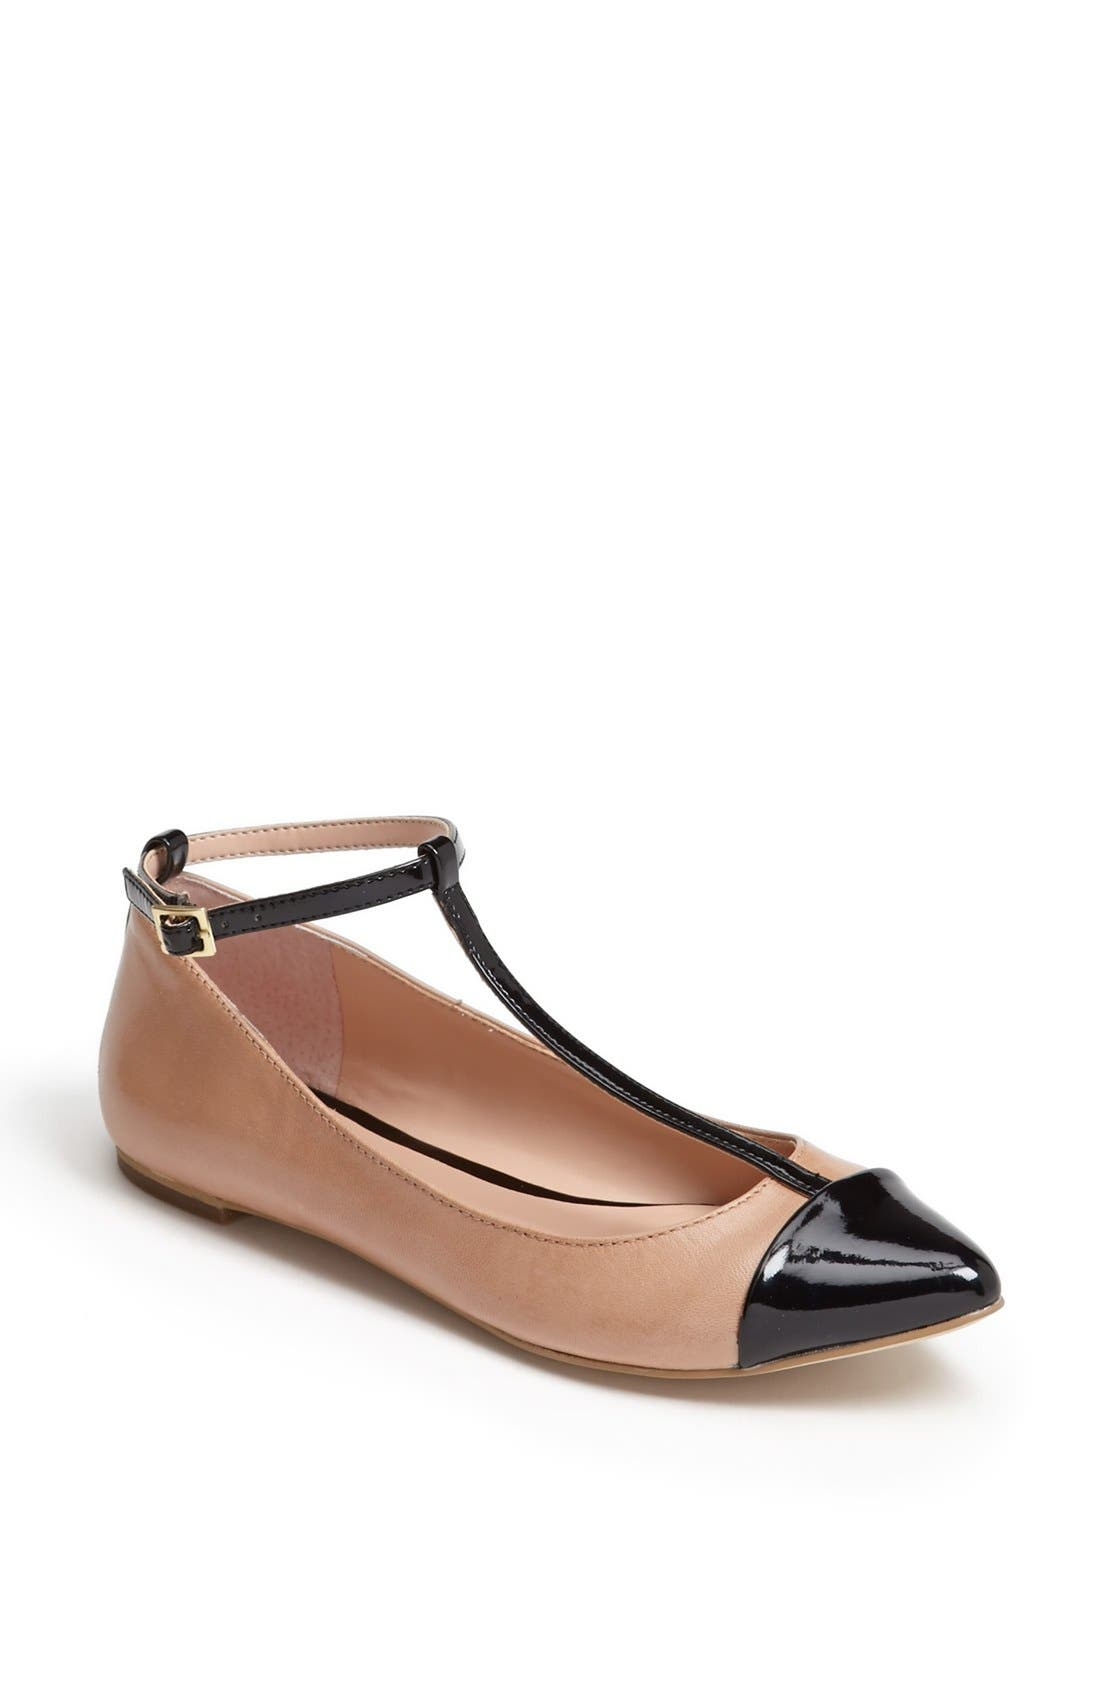 ,                             Julianne Hough for Sole Society 'Addy' Flat,                             Main thumbnail 17, color,                             102